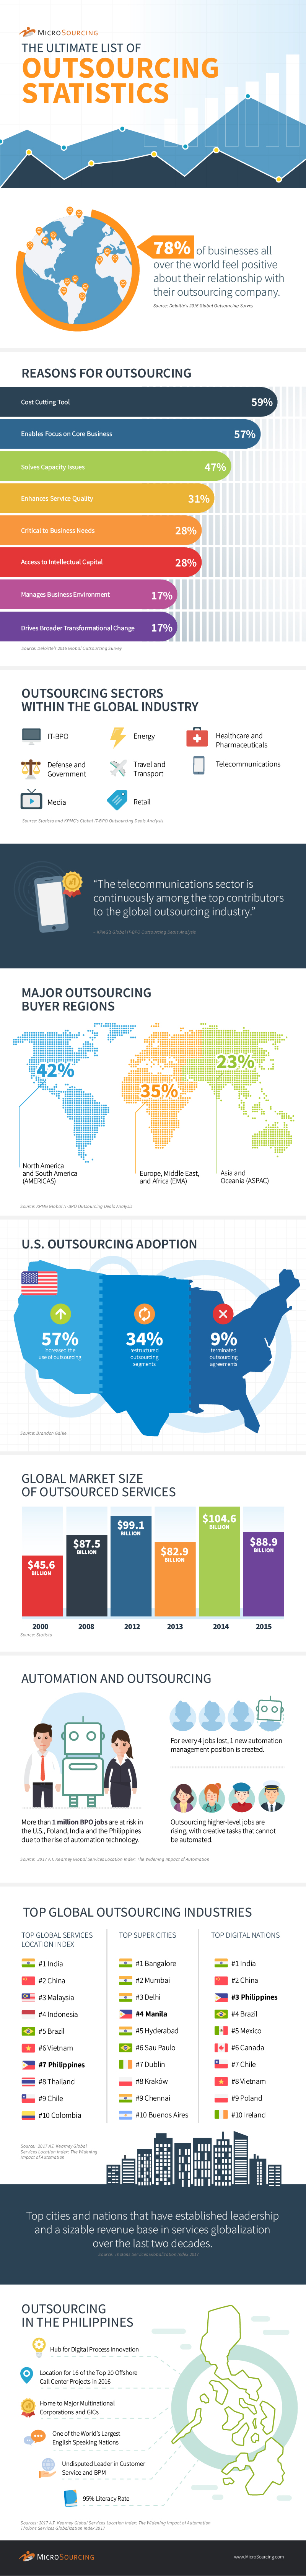 Statistics Related to Outsourcing: The Definitive List - Infographic